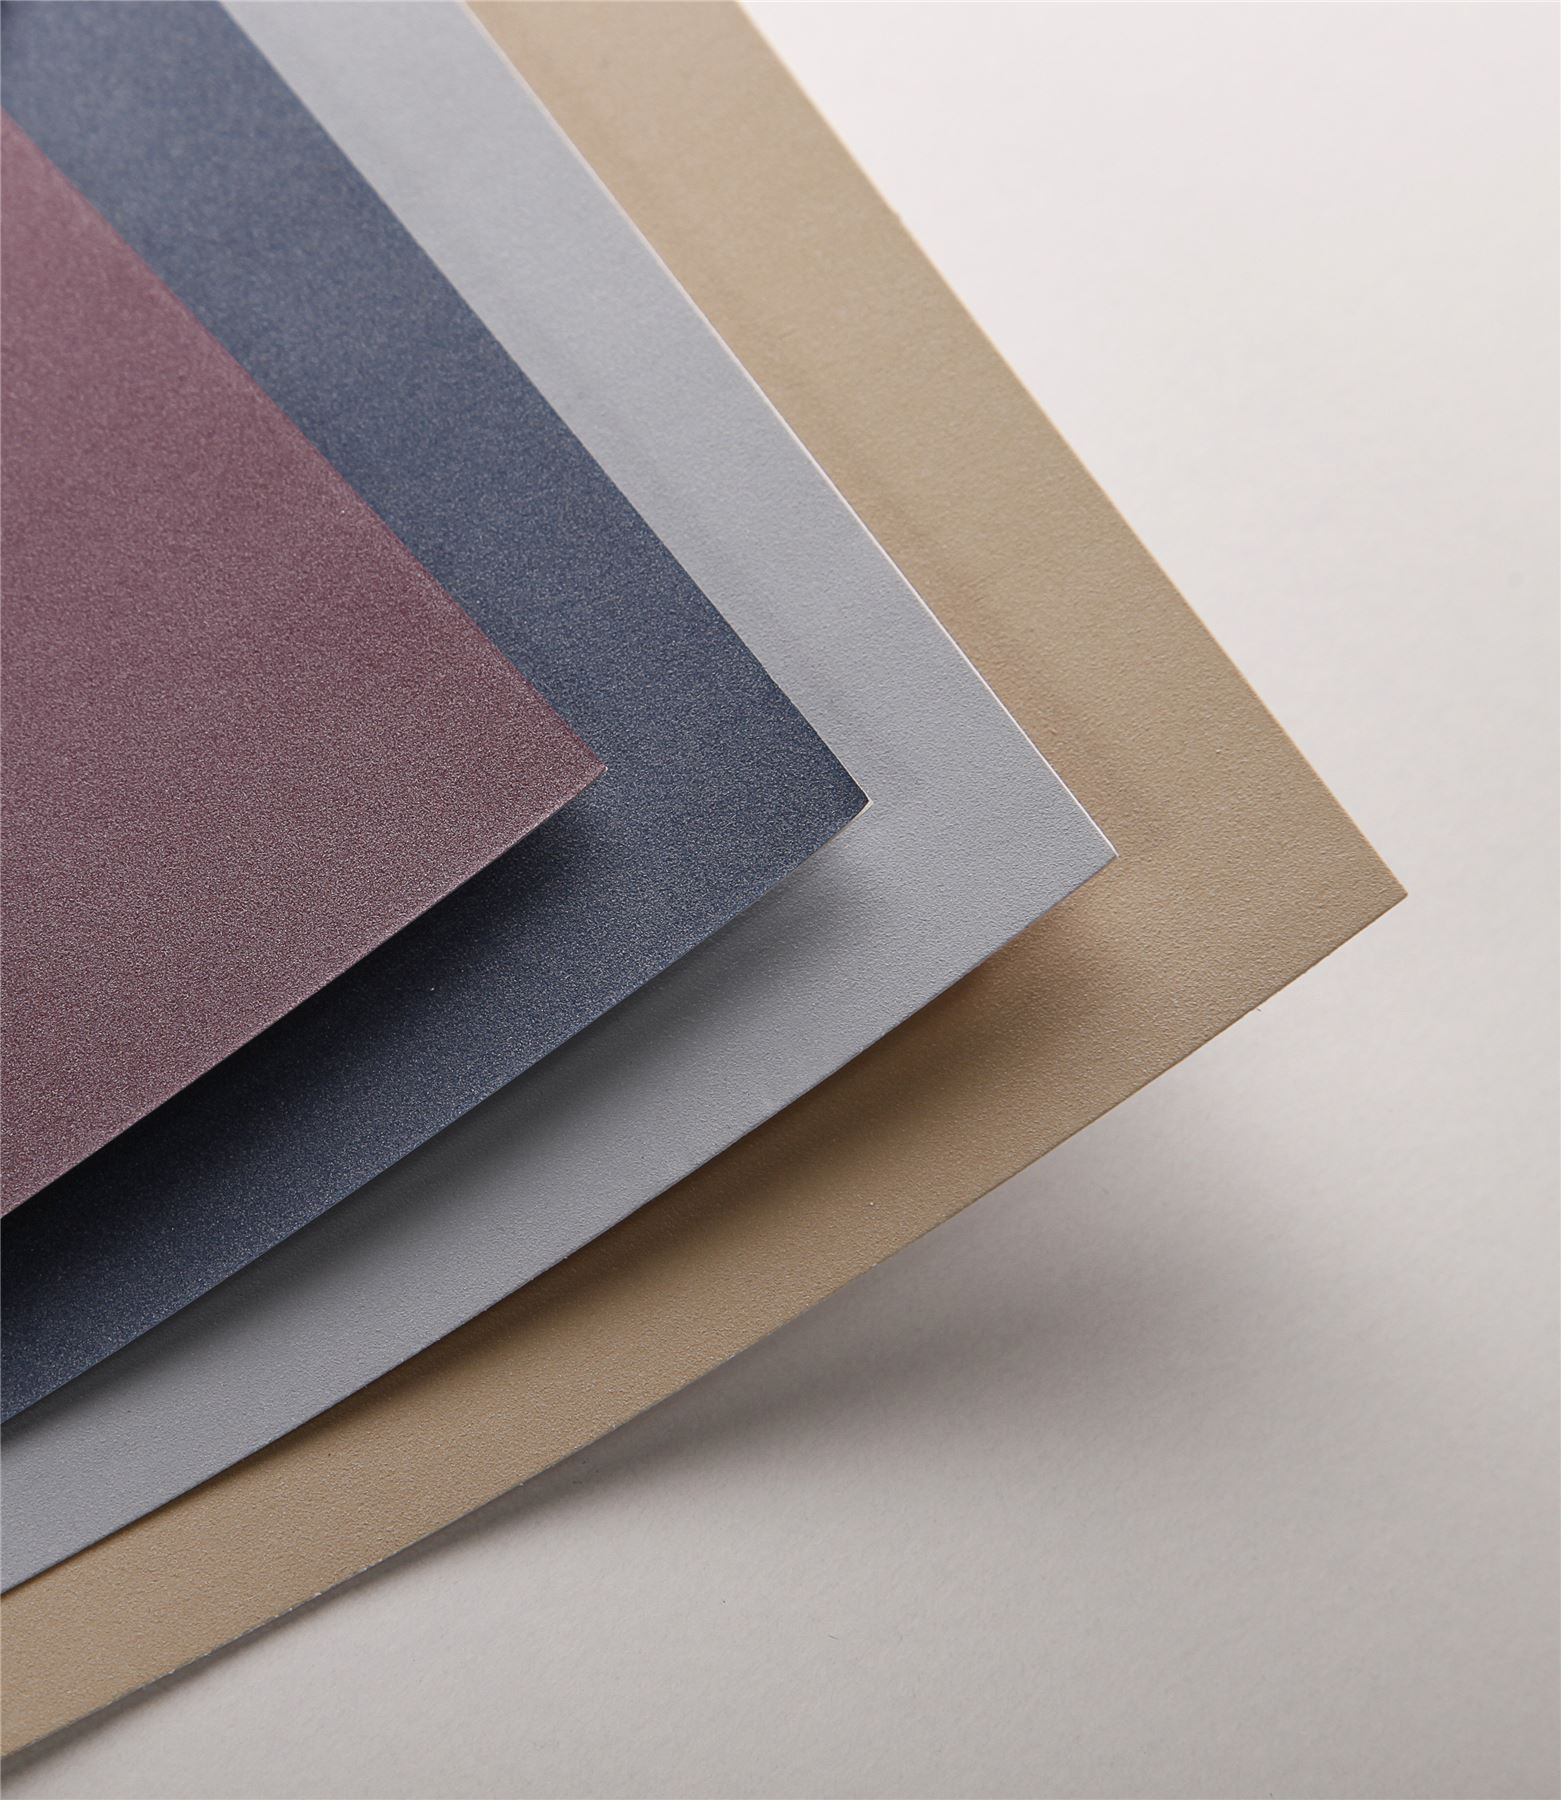 Clairefontaine-PastelMat-Pads-6-pad-choices-in-assorted-colours-amp-sizes thumbnail 26